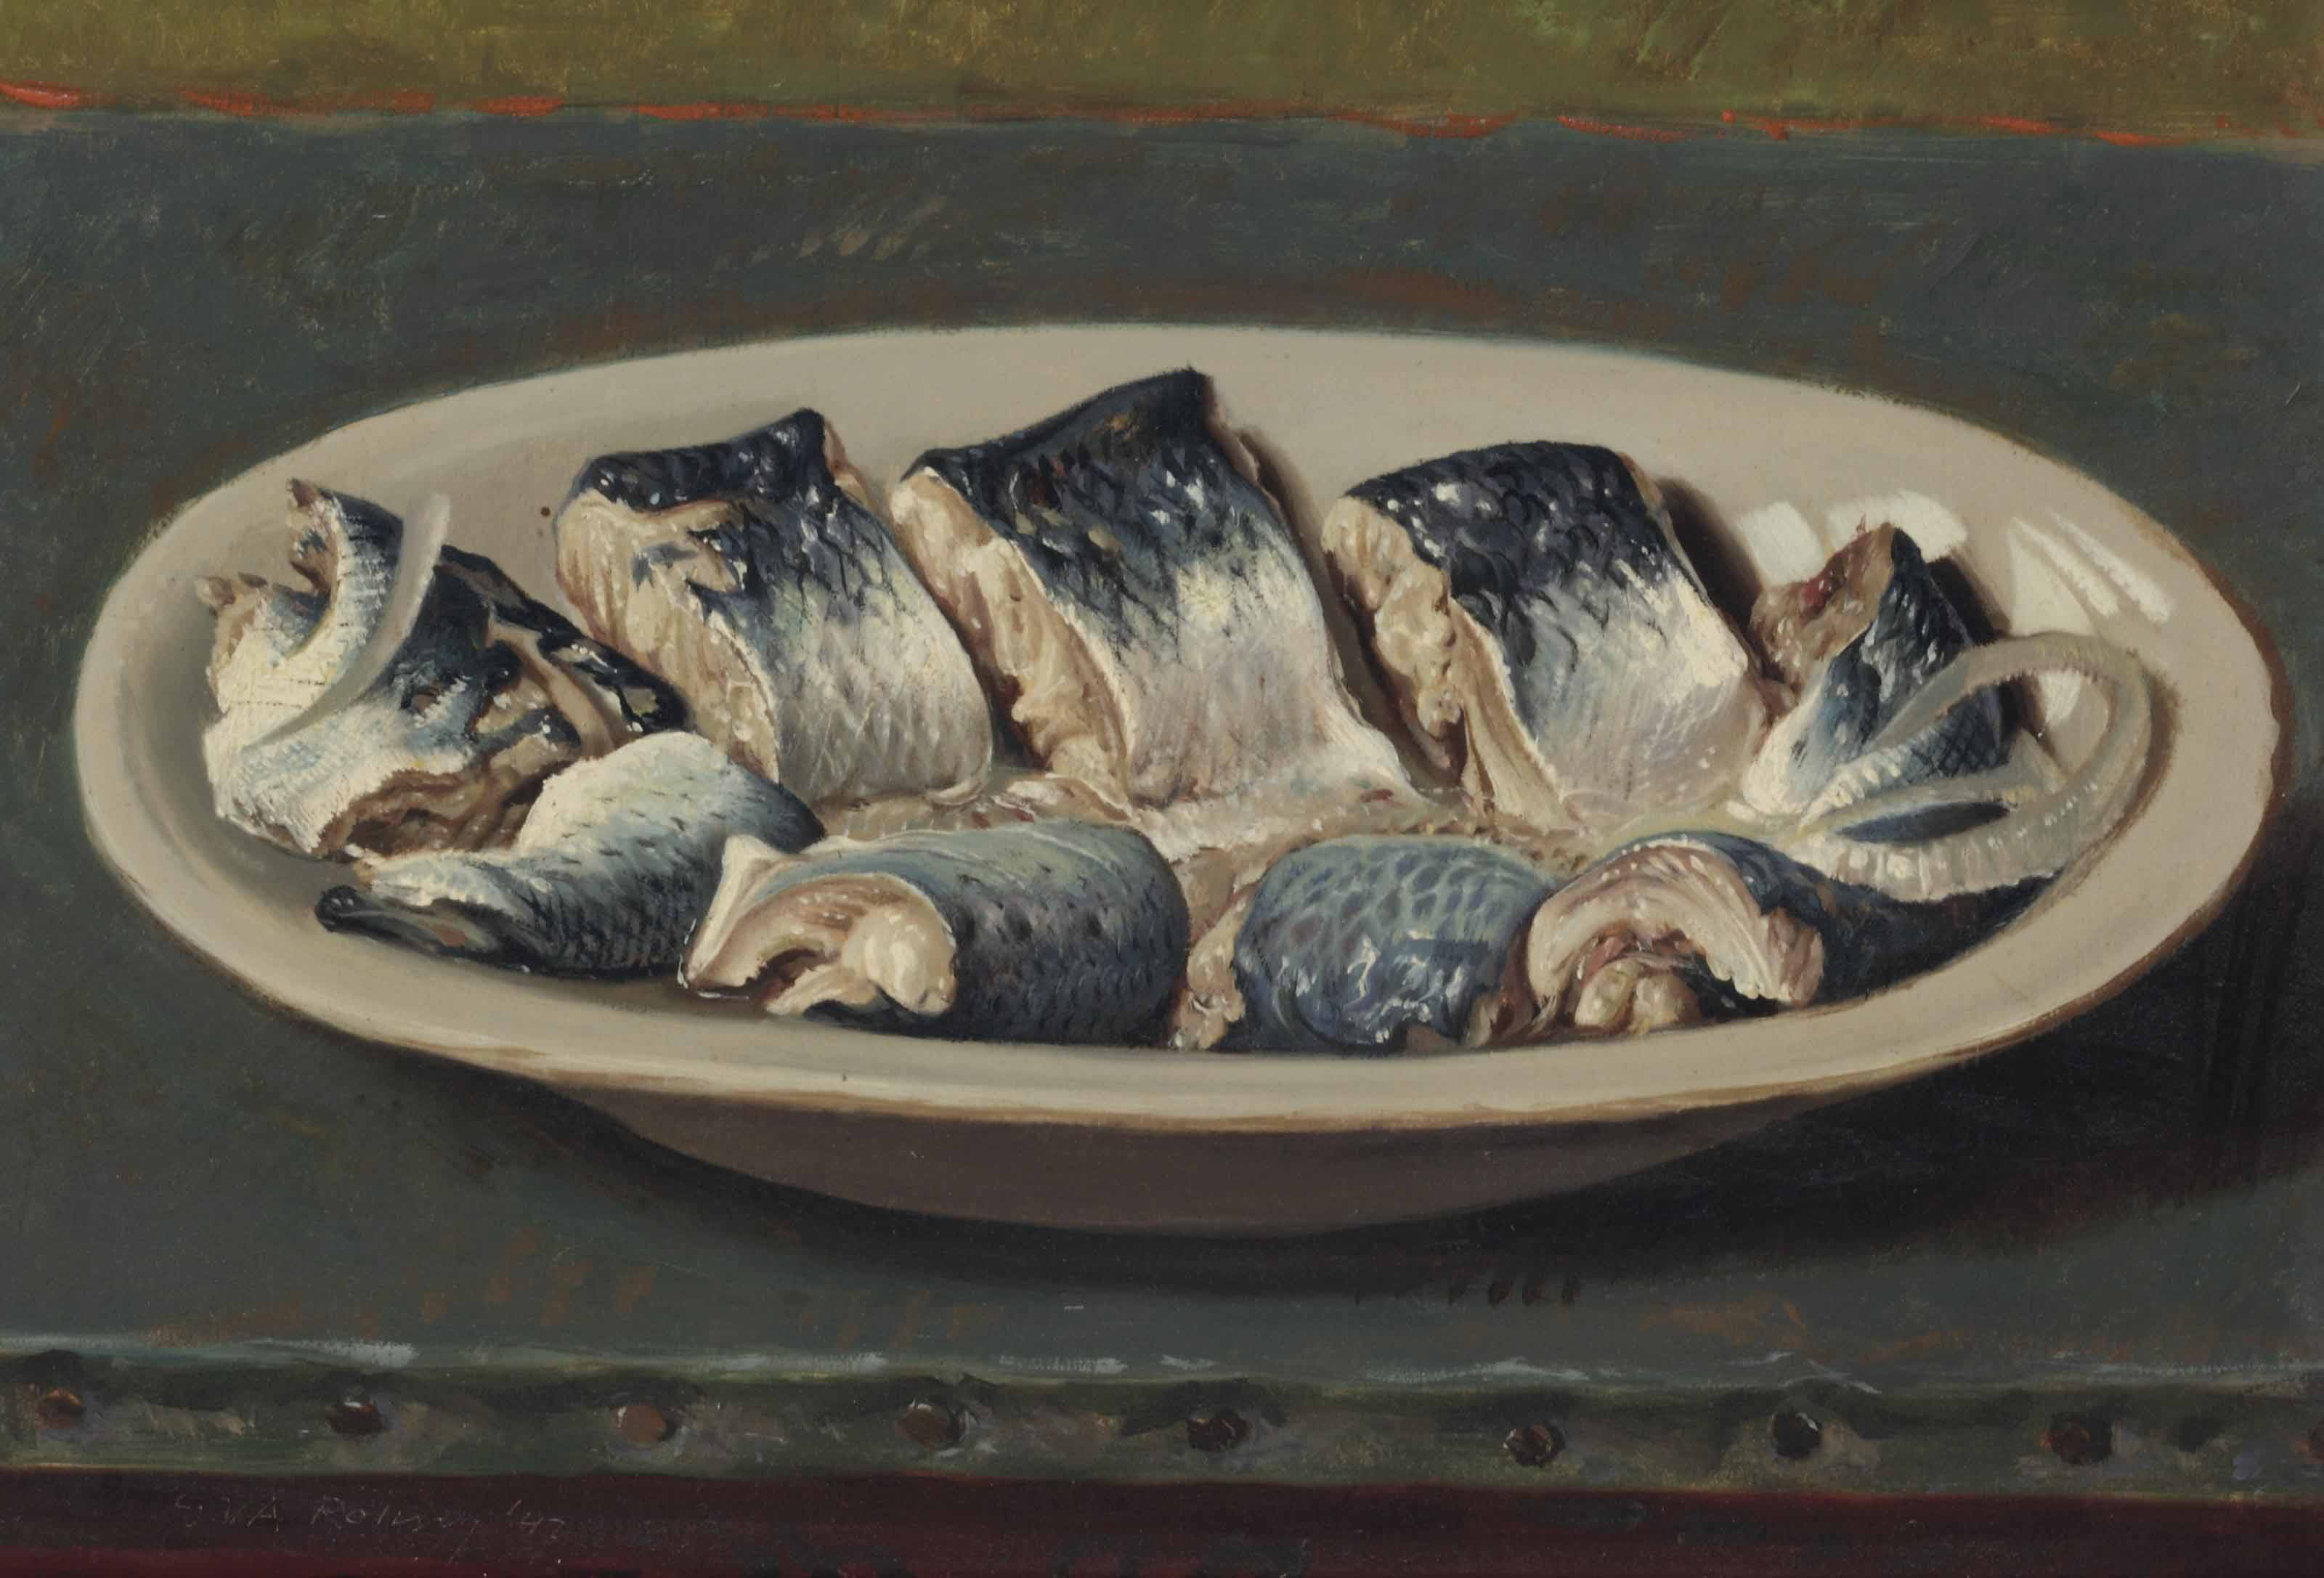 A still life with pickled herring on a dish